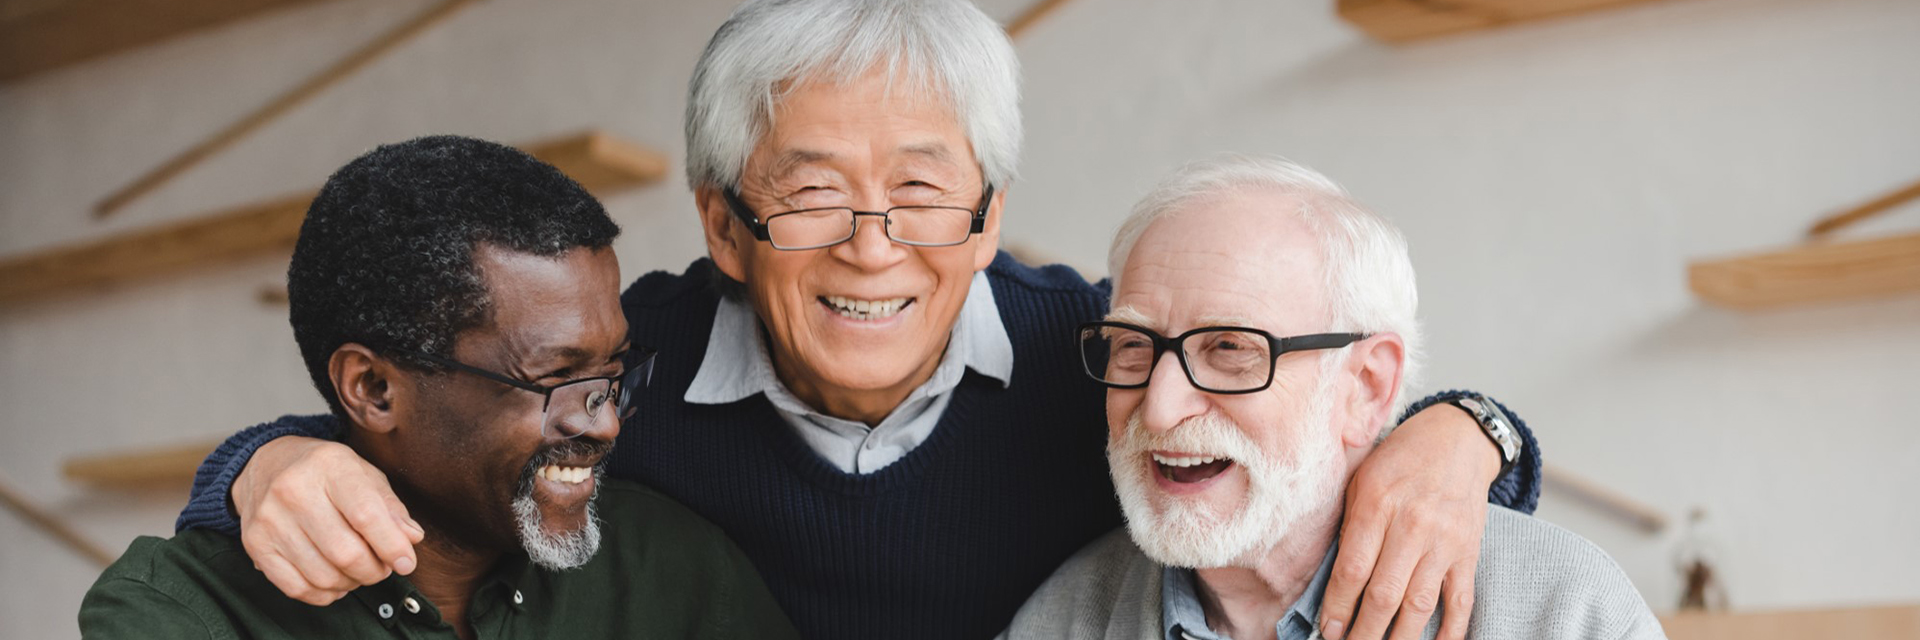 three men in glasses smiling arms around each other